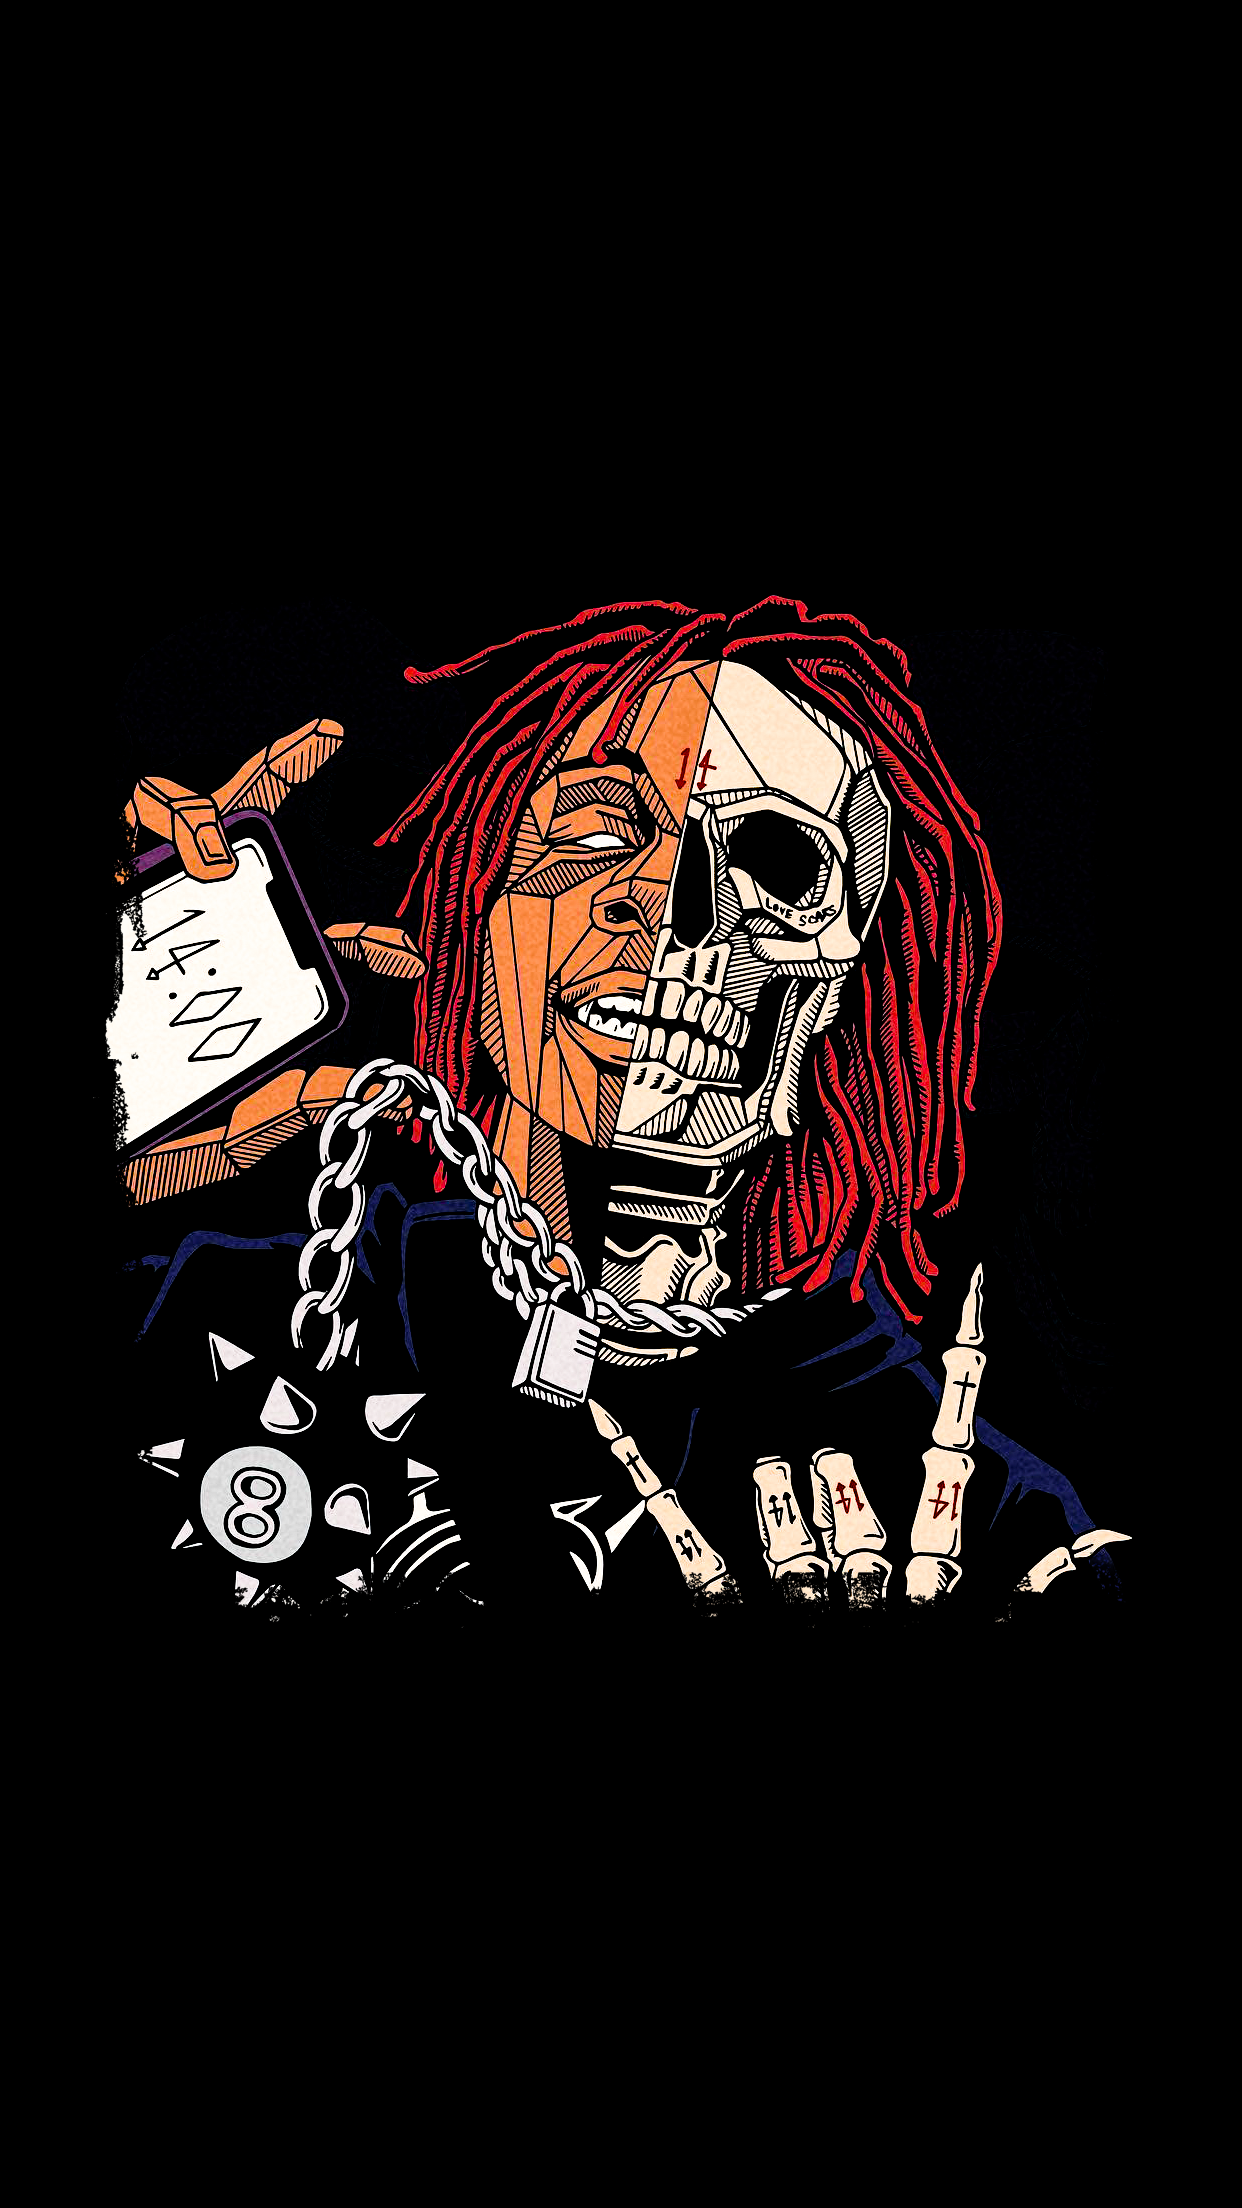 Trippie Redd Wallpapers Posted By Ryan Mercado